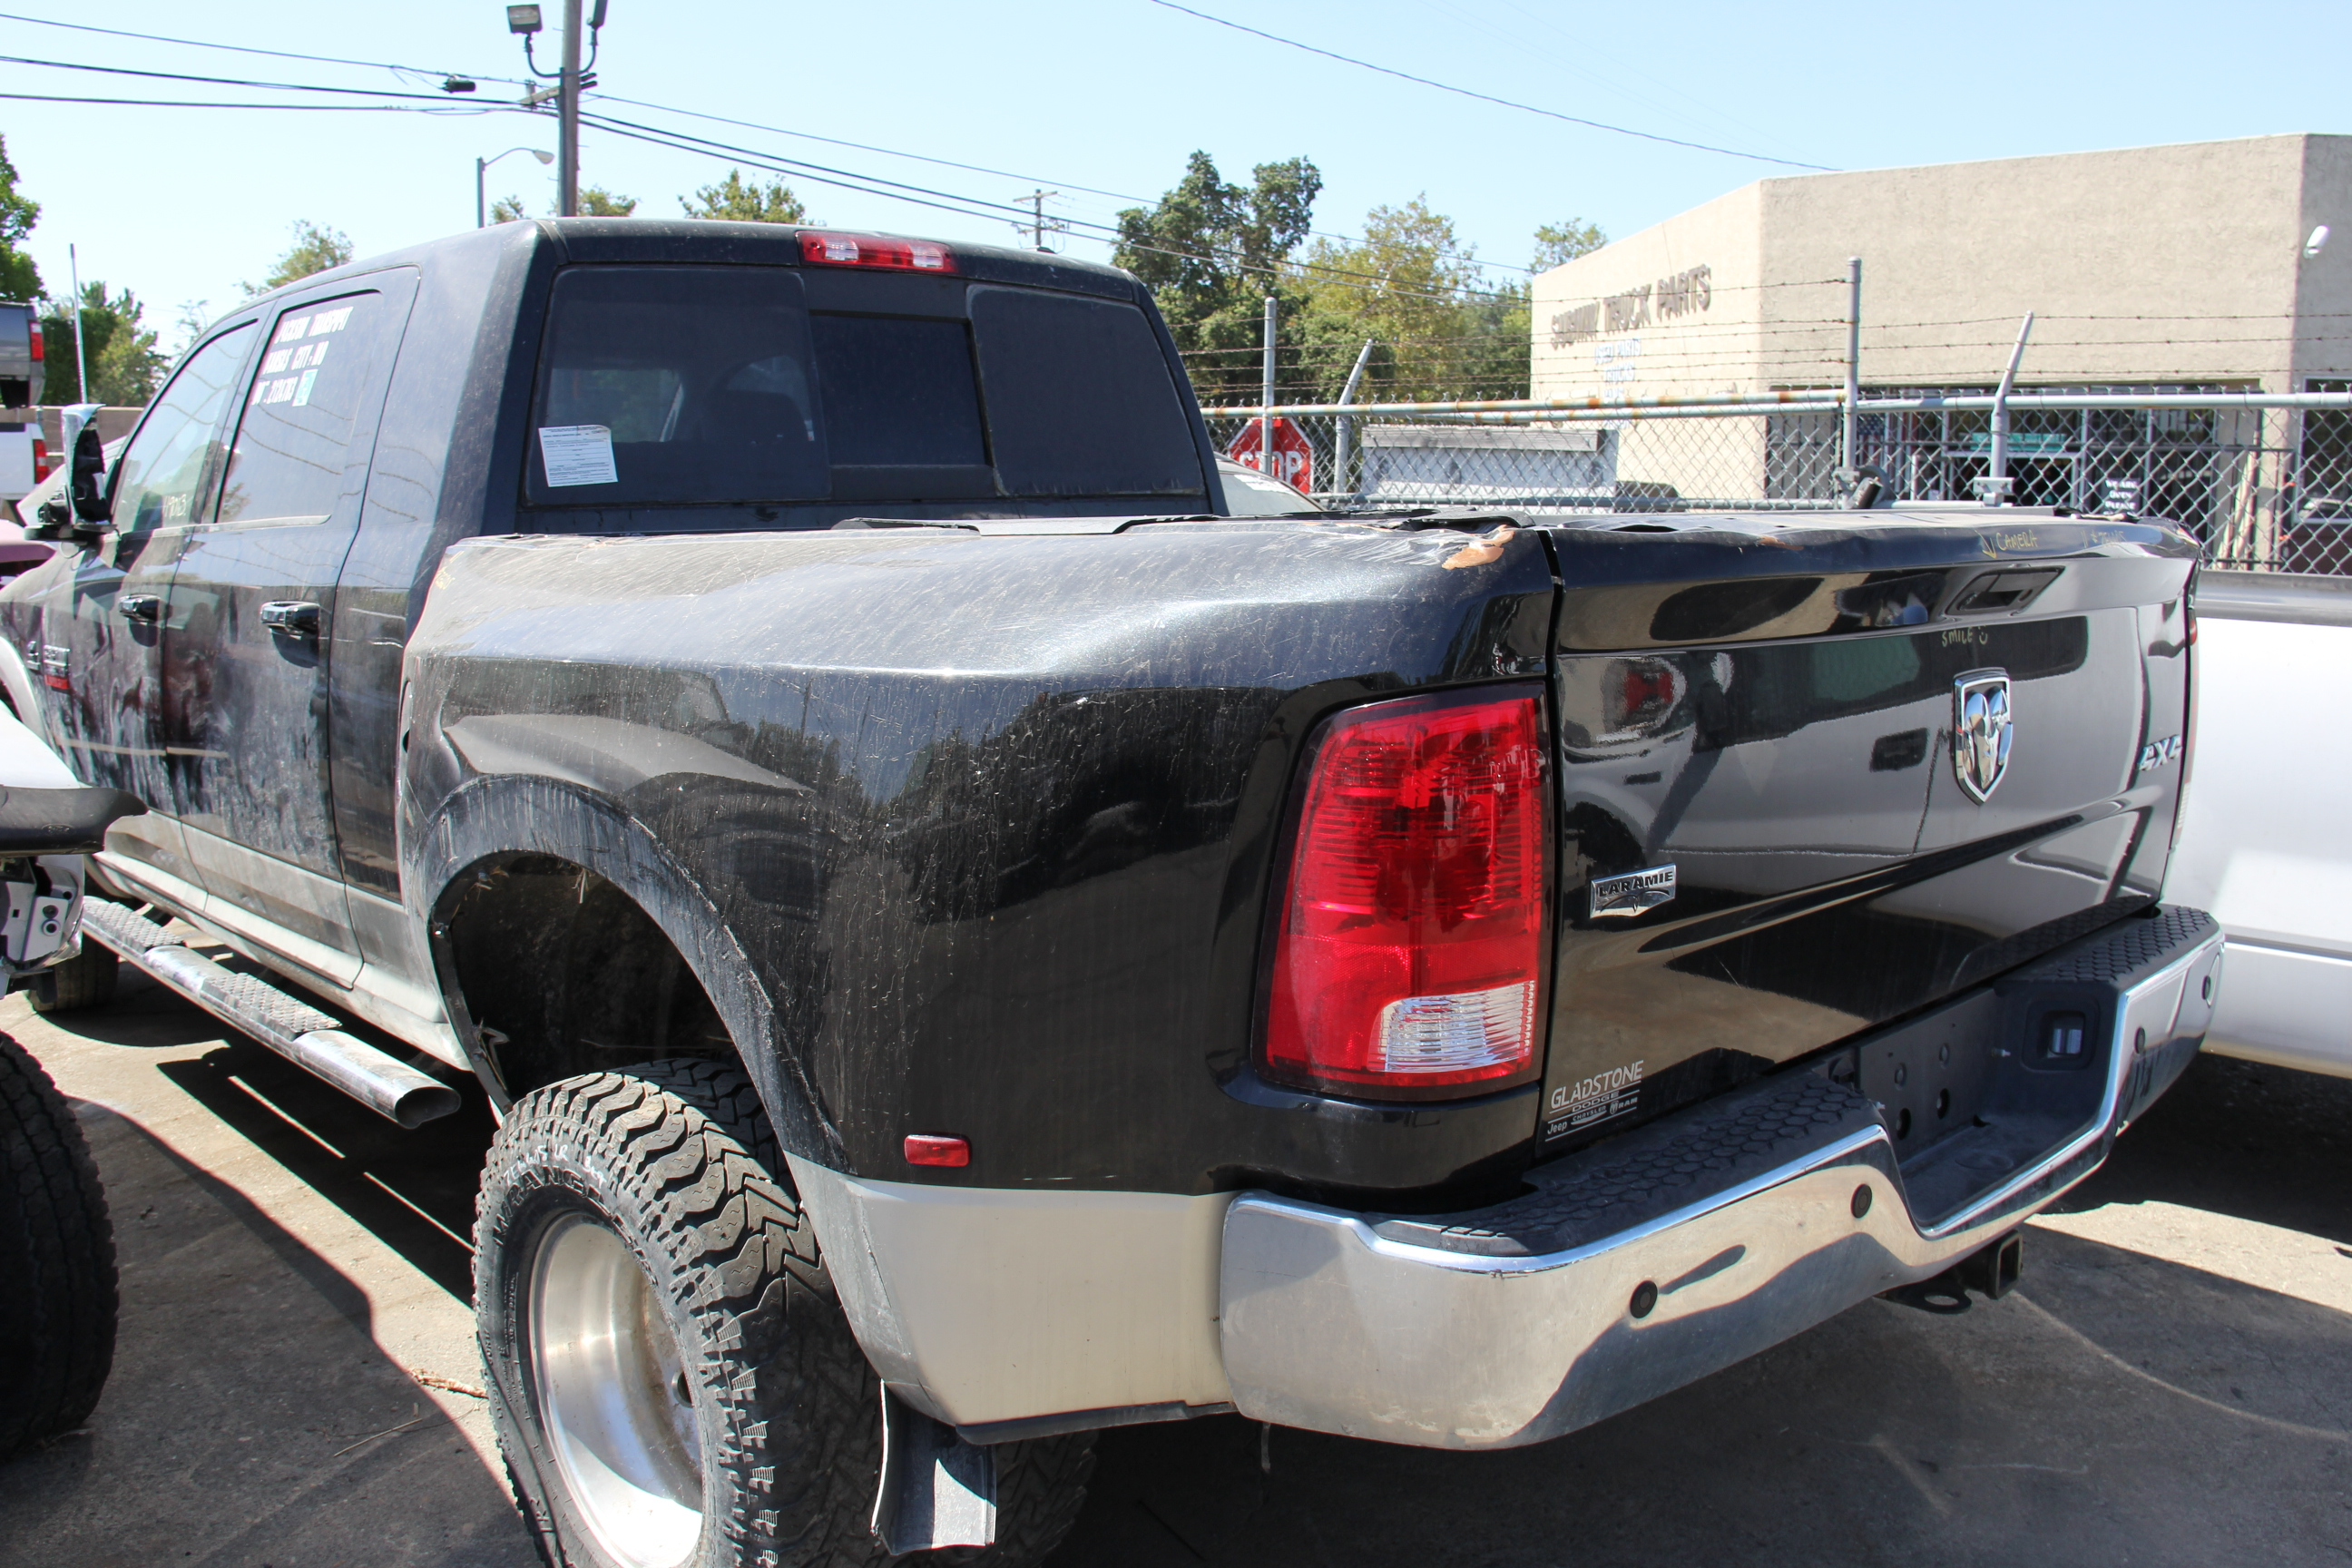 2011 dodge ram megacab 3500 dually 6 7l diesel subway truck parts inc auto recycling since. Black Bedroom Furniture Sets. Home Design Ideas